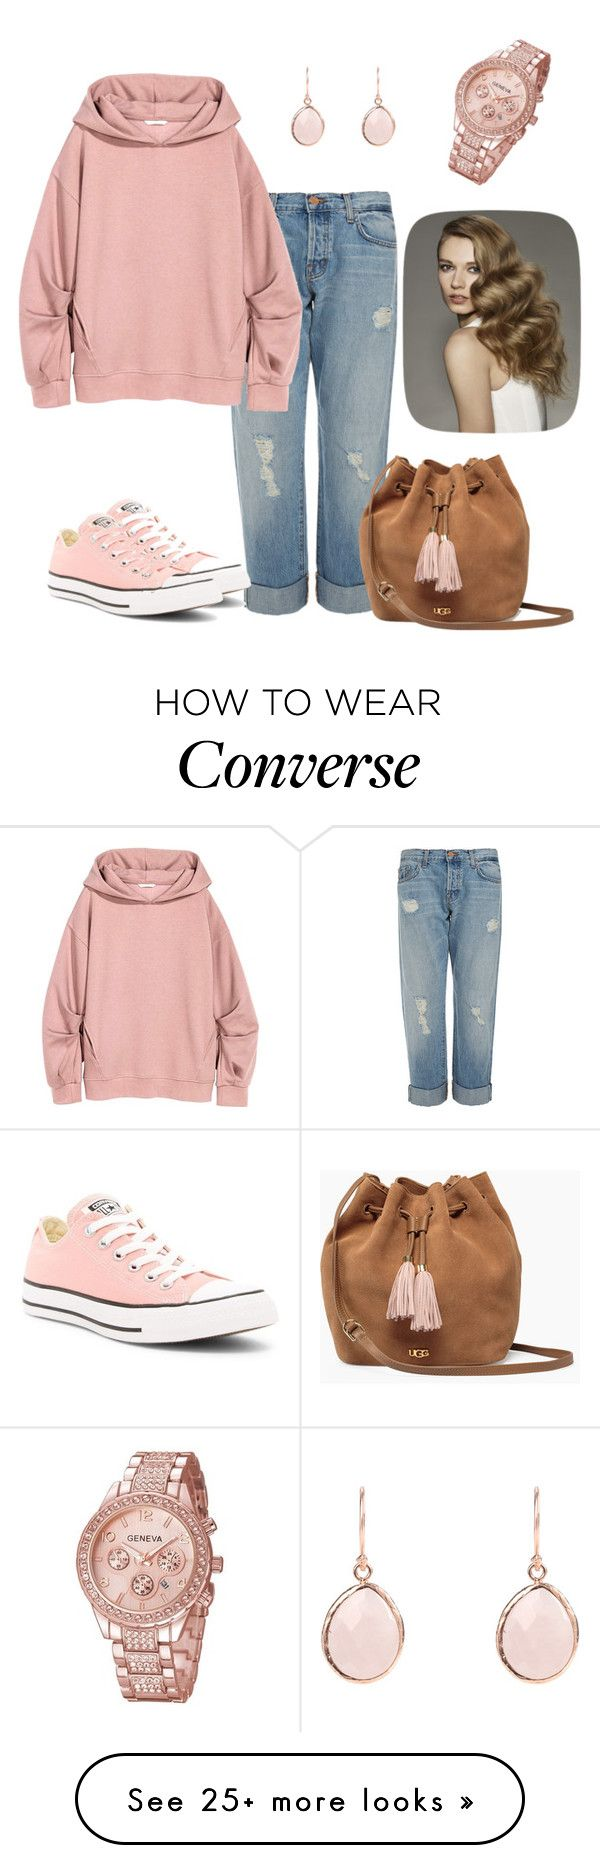 """Untitled #543"" by sylvia-tall on Polyvore featuring J Brand, Converse and UGG"